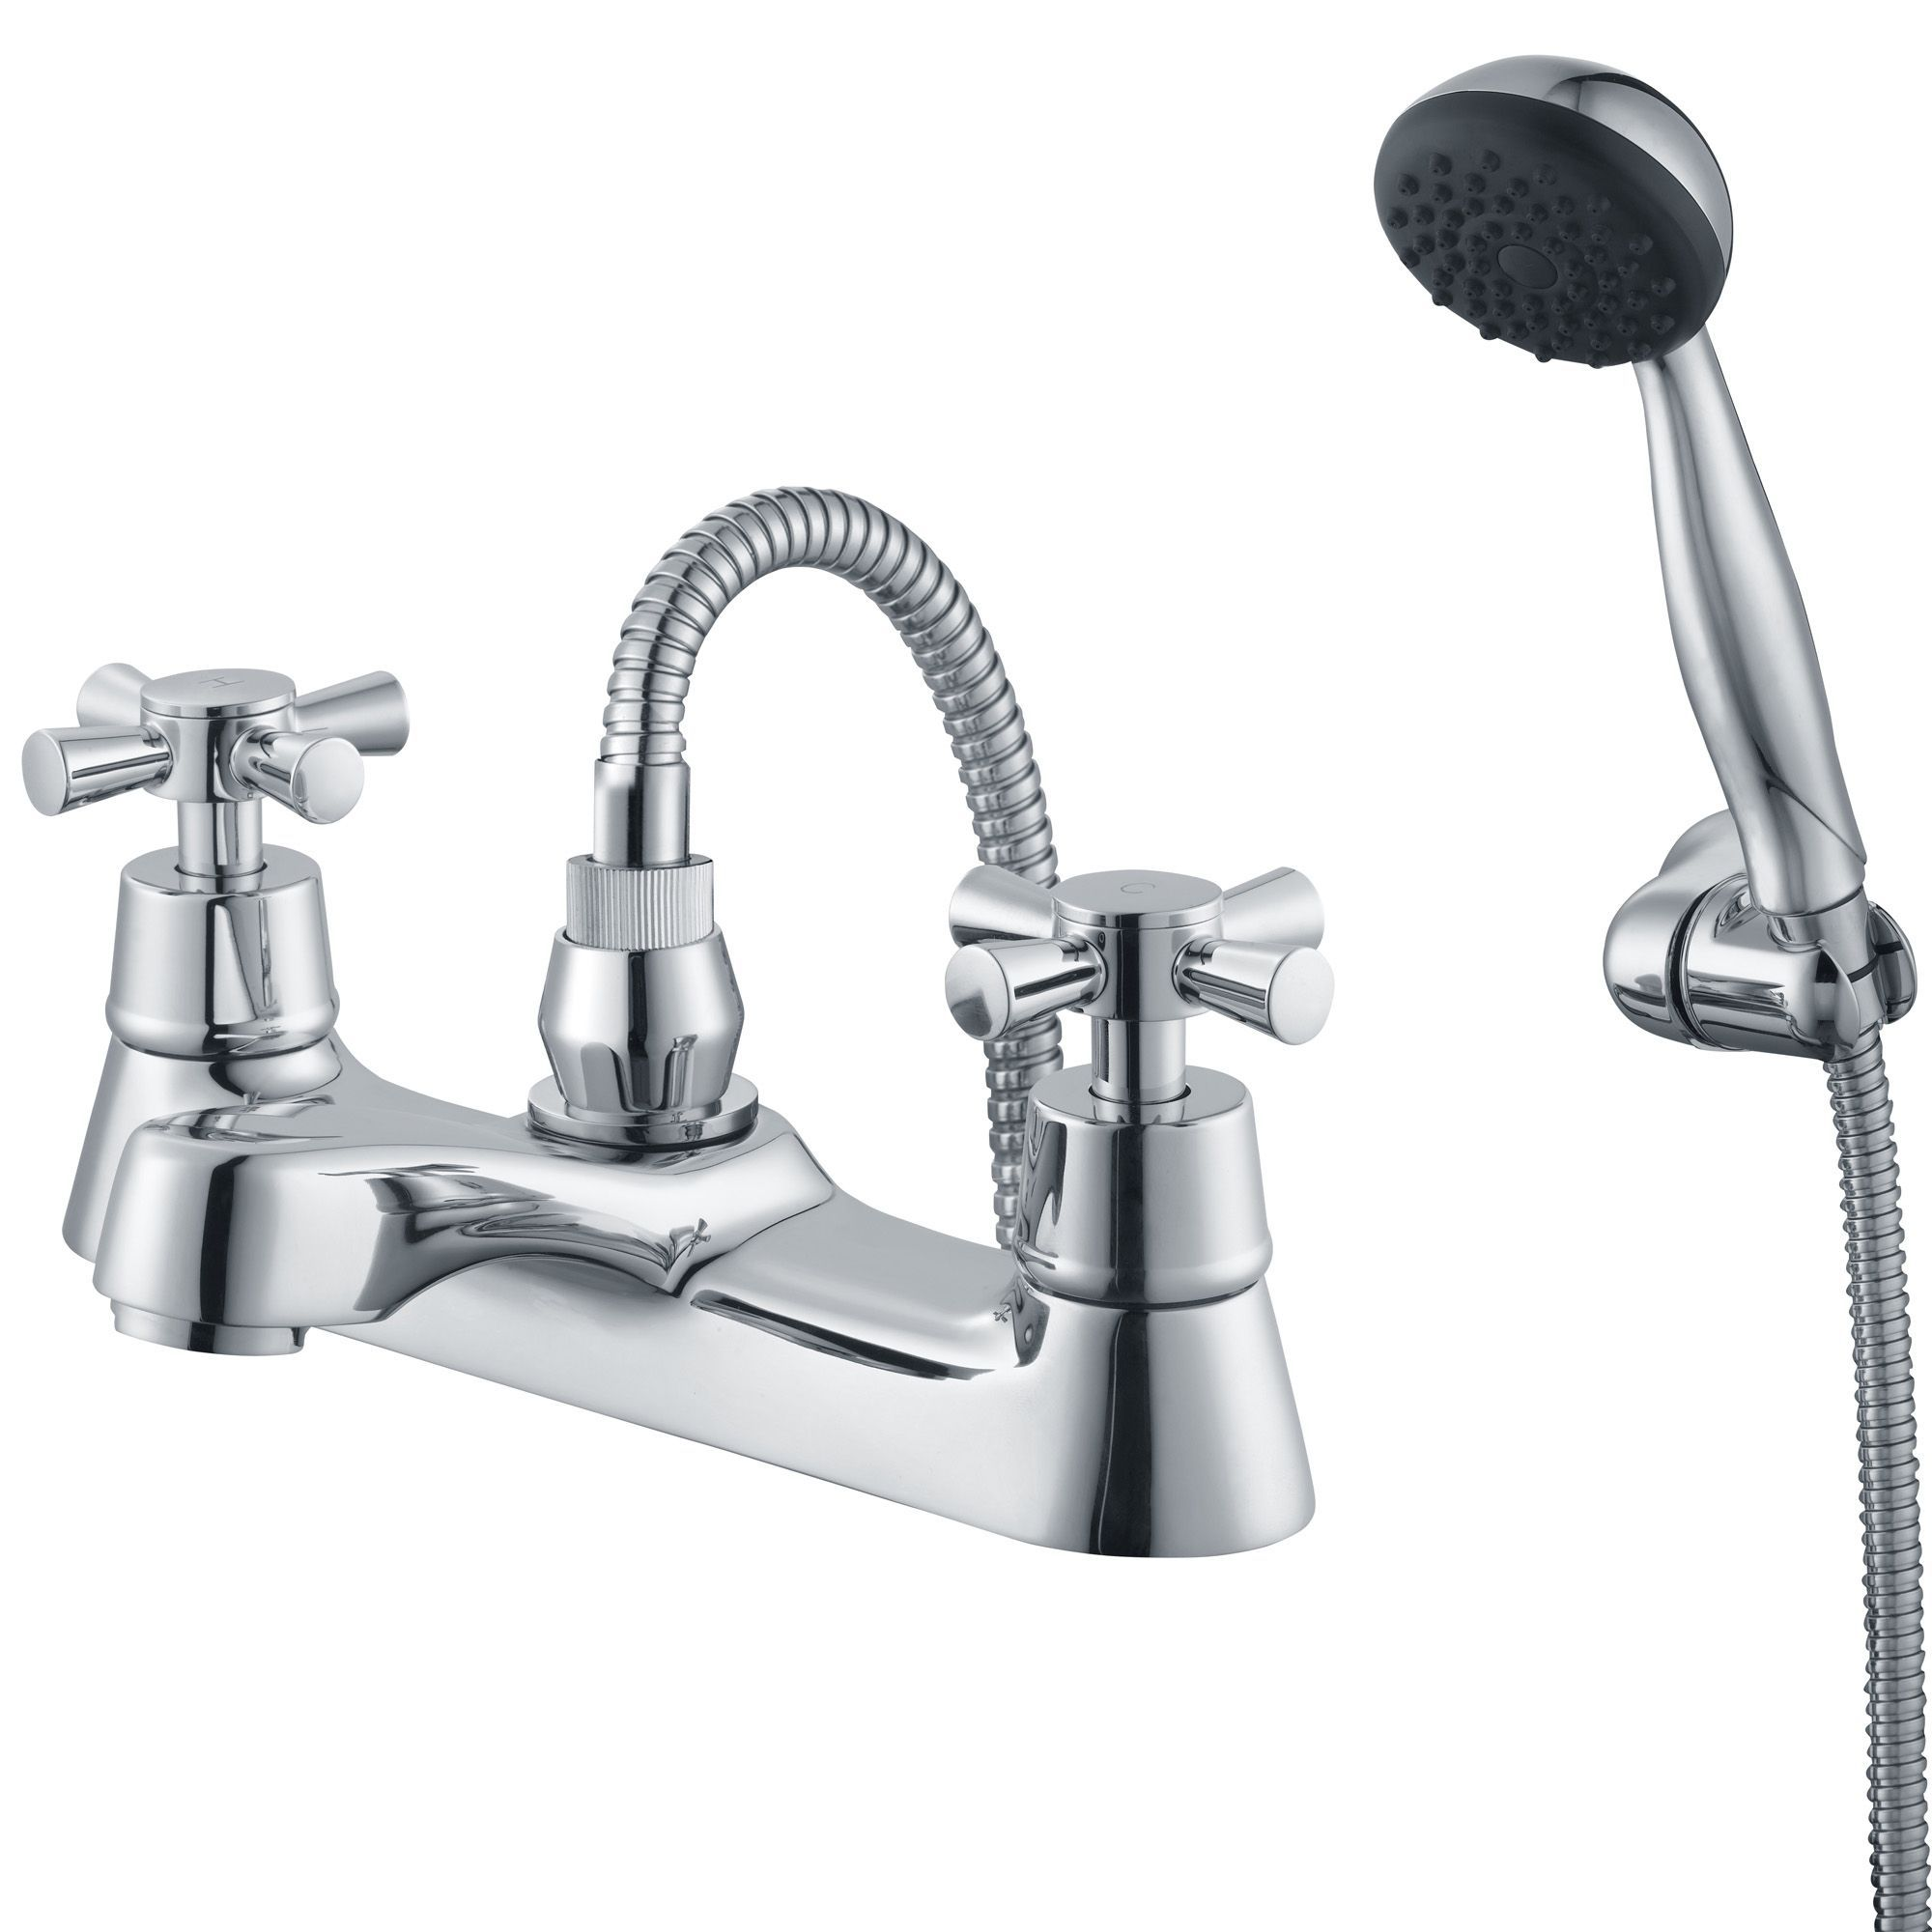 Plumbsure Crystal Chrome Bath Shower Mixer Tap | Departments | DIY ...